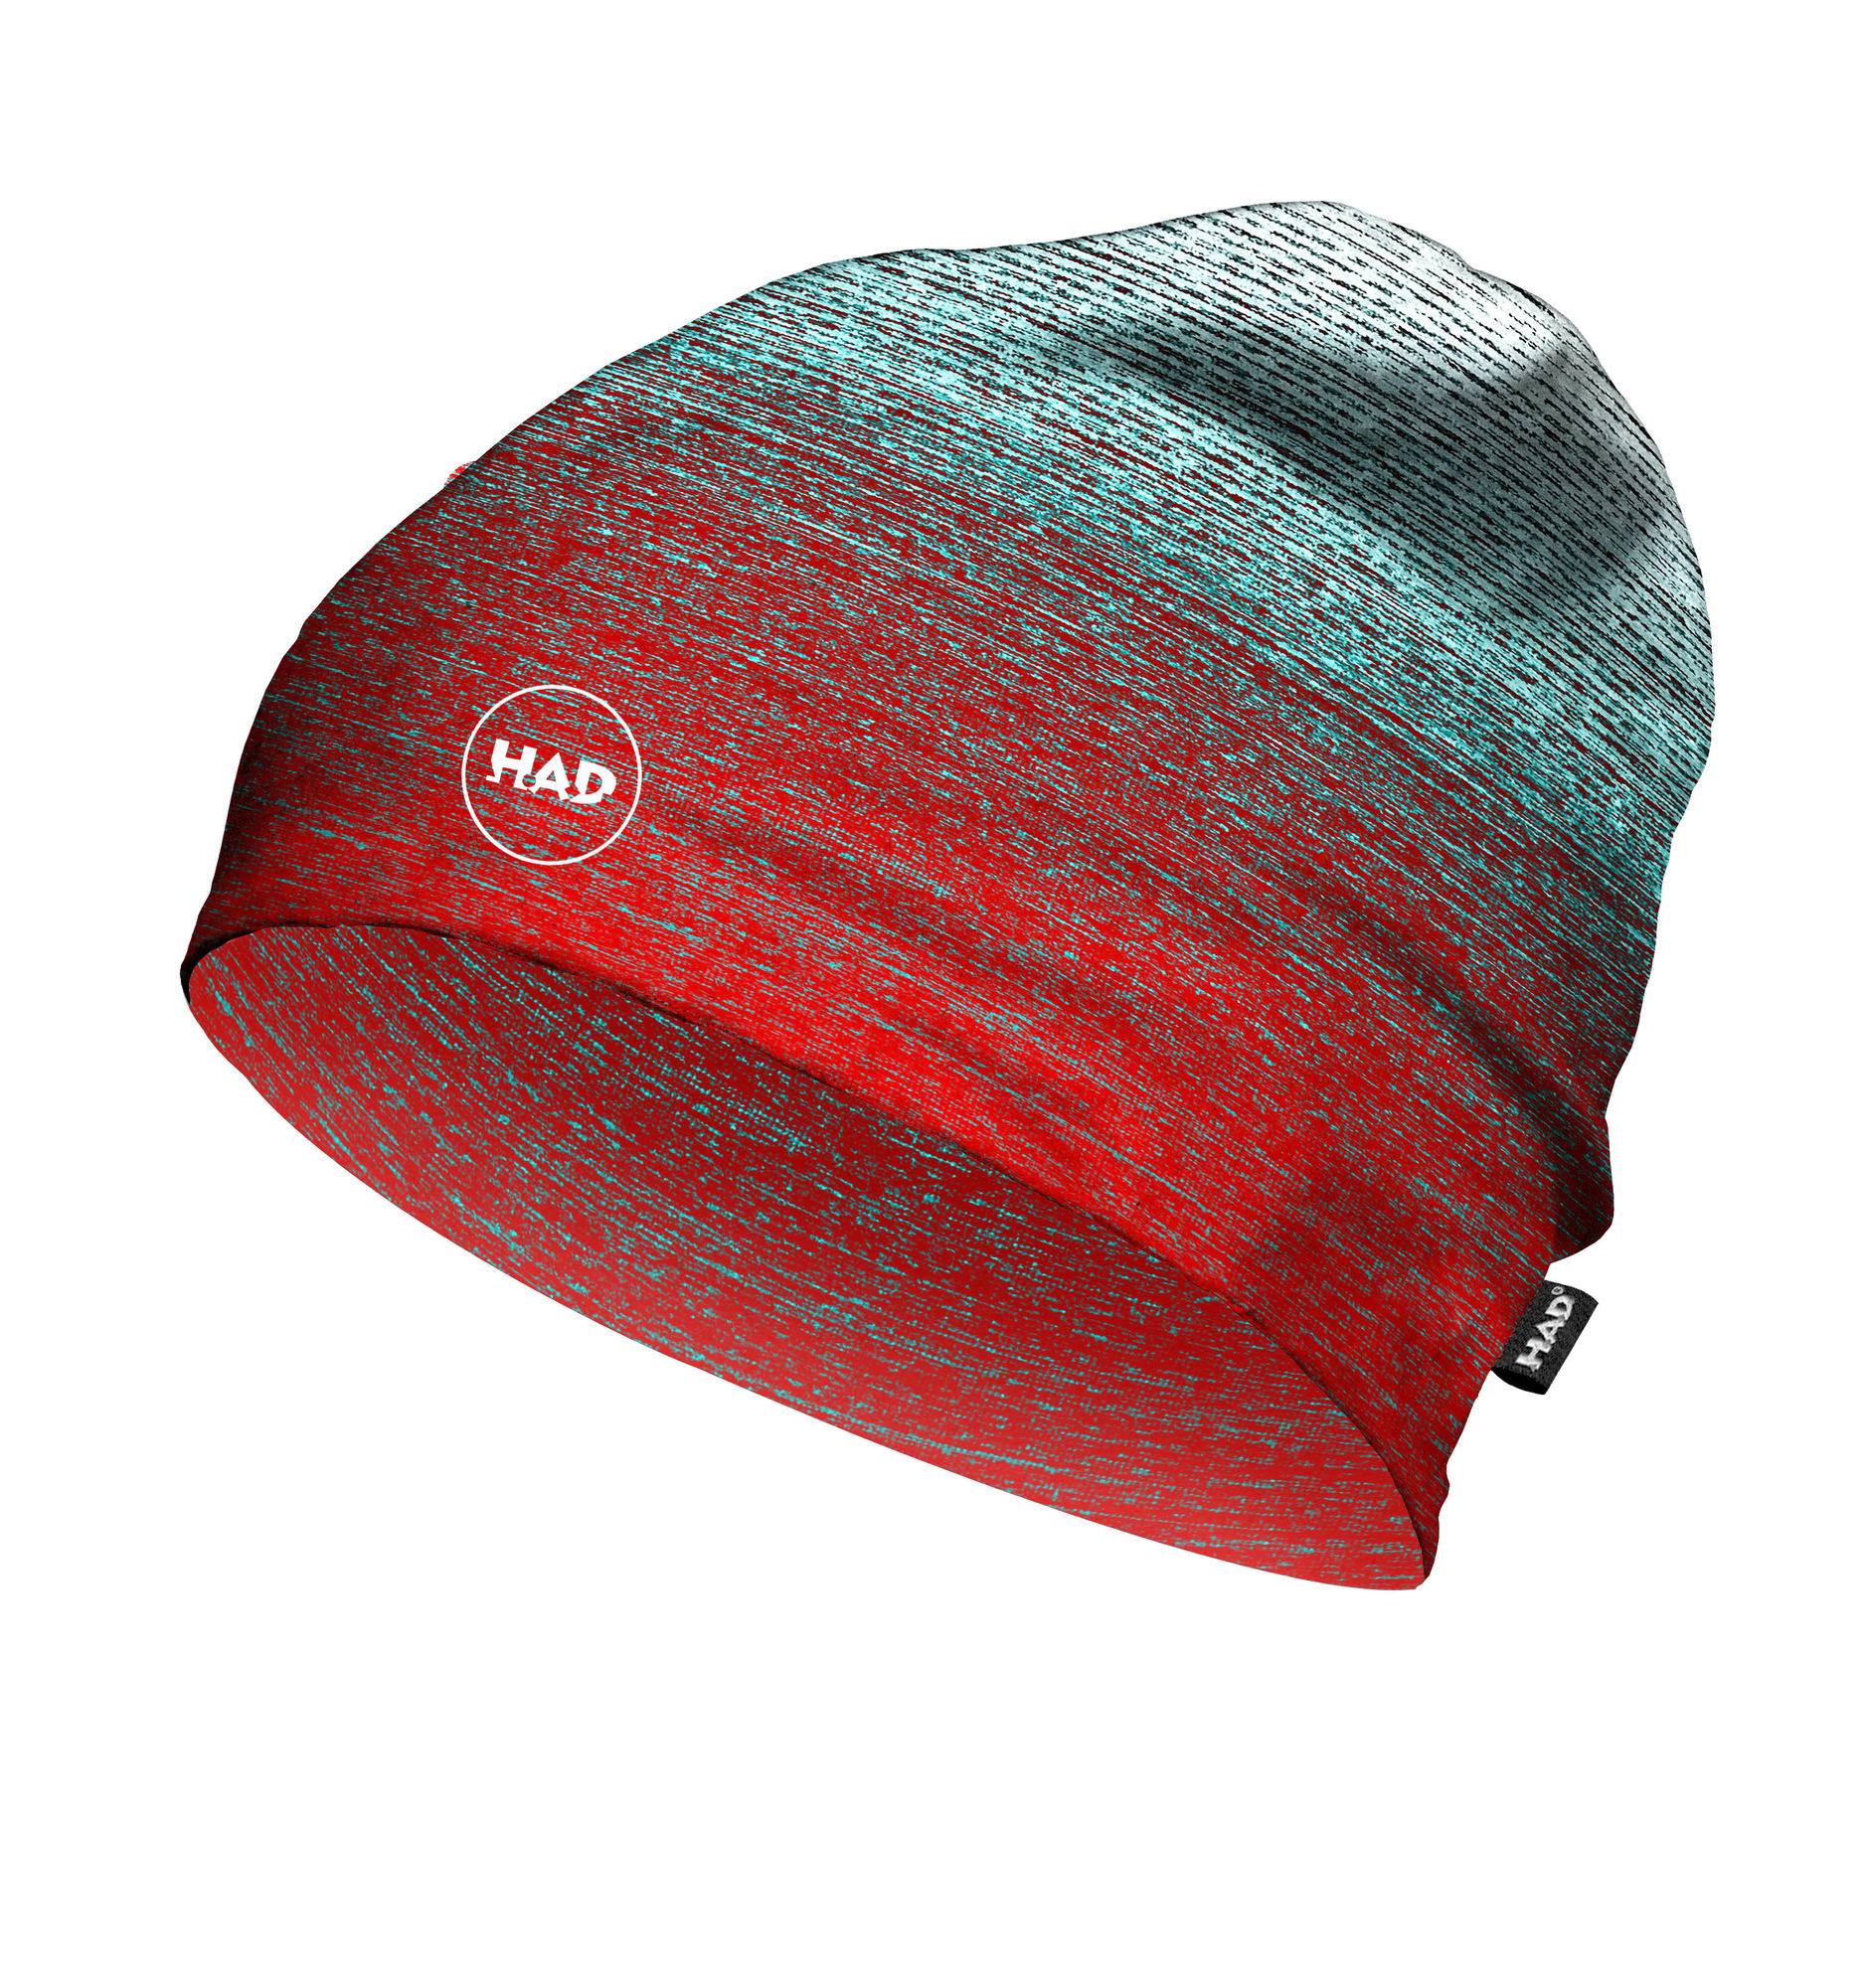 ProFeet HAD Printed Fleece Beanie in Rot Blau